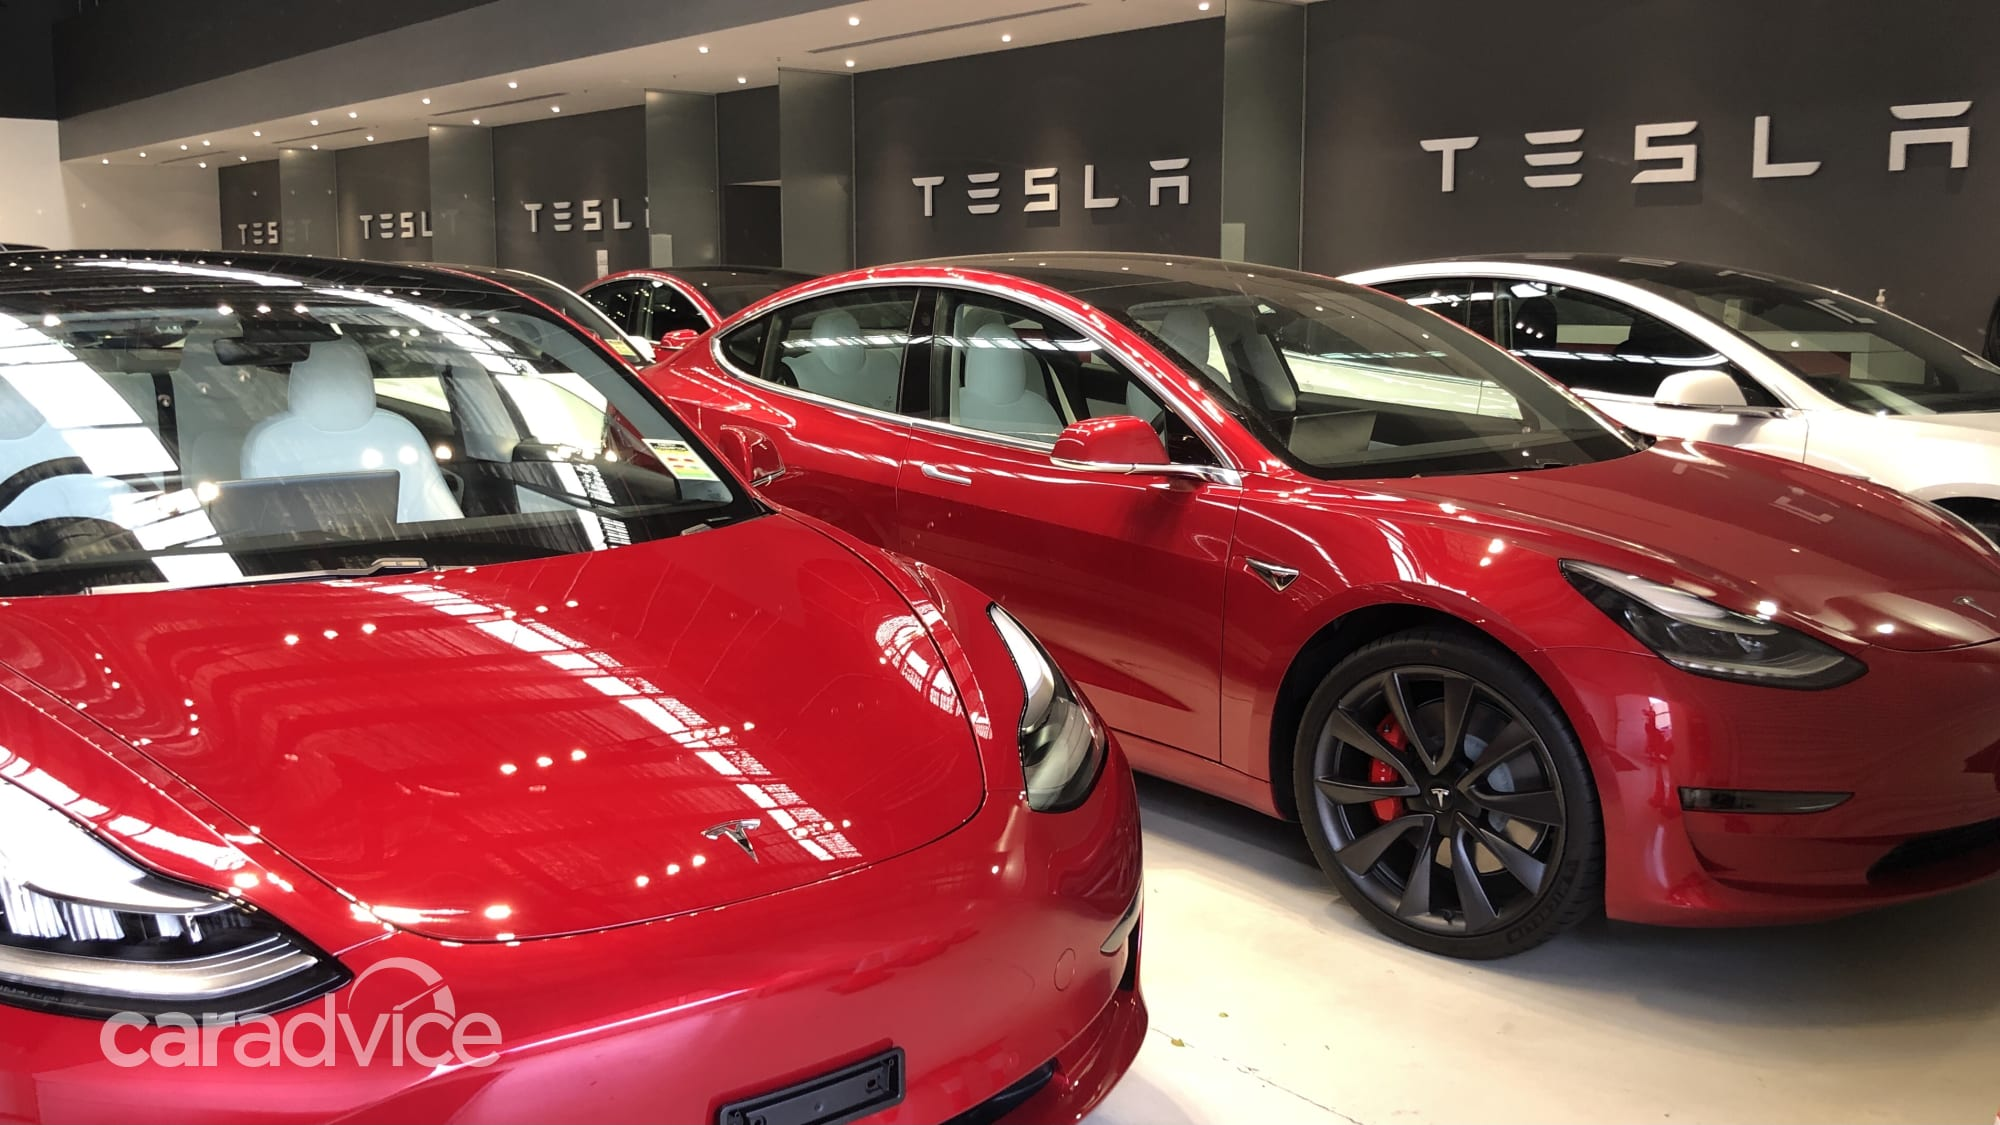 Proof electric cars don't need taxpayer support: Tesla and GM sales up despite running out of $7500 tax credits. - 2 of 2